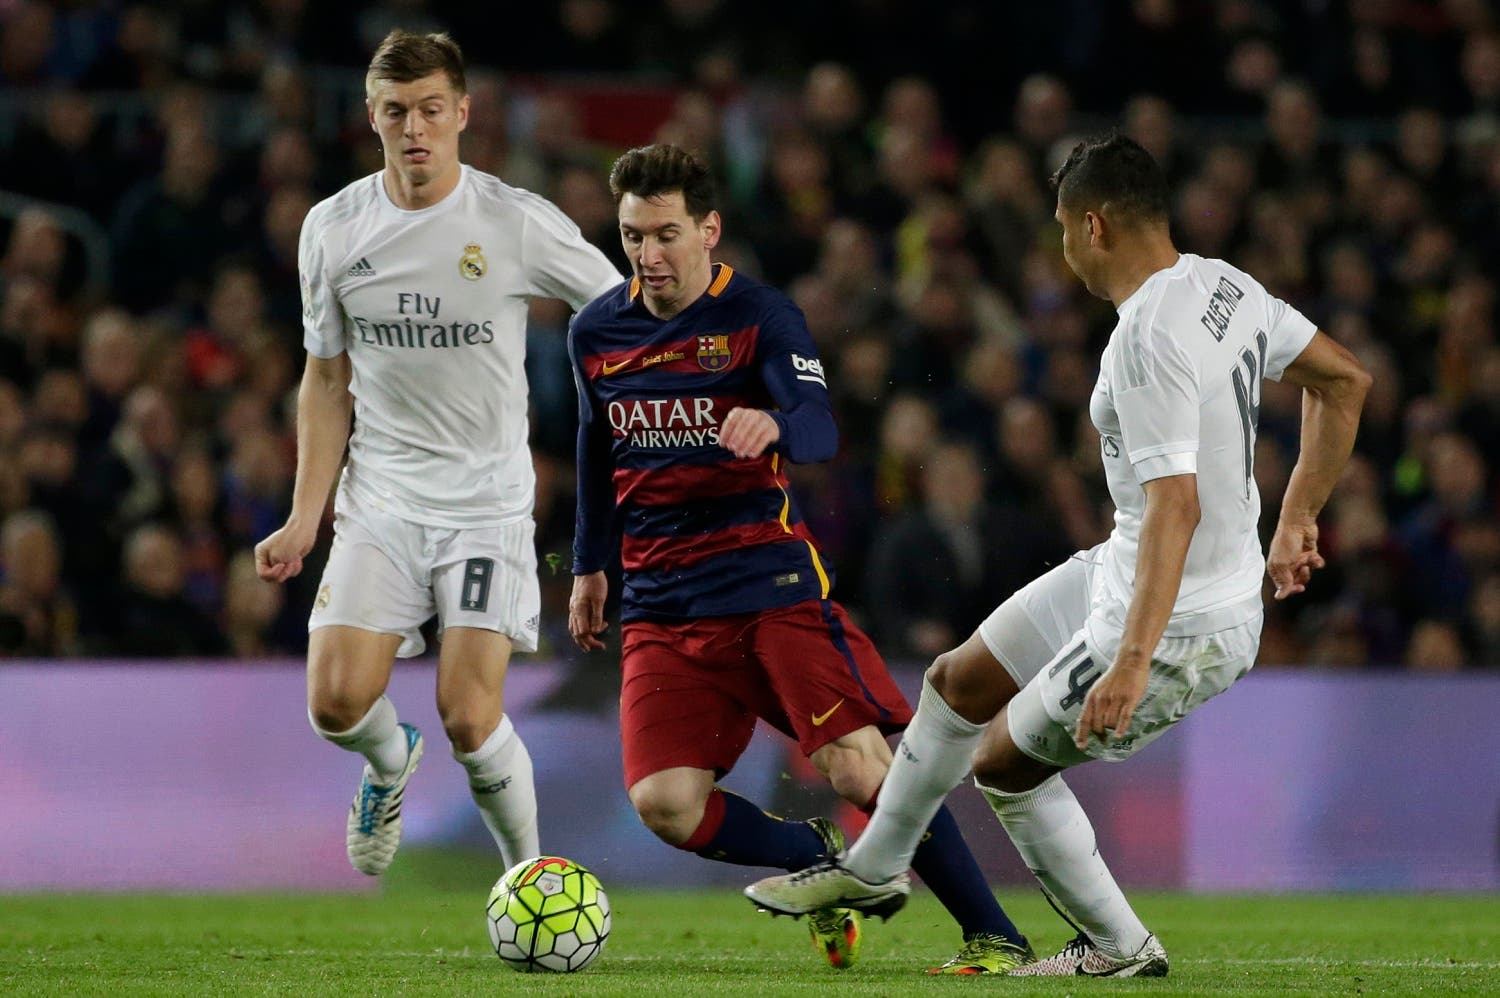 Barcelona's Lionel Messi, center, runs with the ball between Real Madrid's Toni Kroos, left and Casemiro during a Spanish La Liga soccer match between Barcelona and Real Madrid, dubbed 'el clasico', at the Camp Nou stadium in Barcelona, Spain, Saturday, April 2, 2016. (AP)